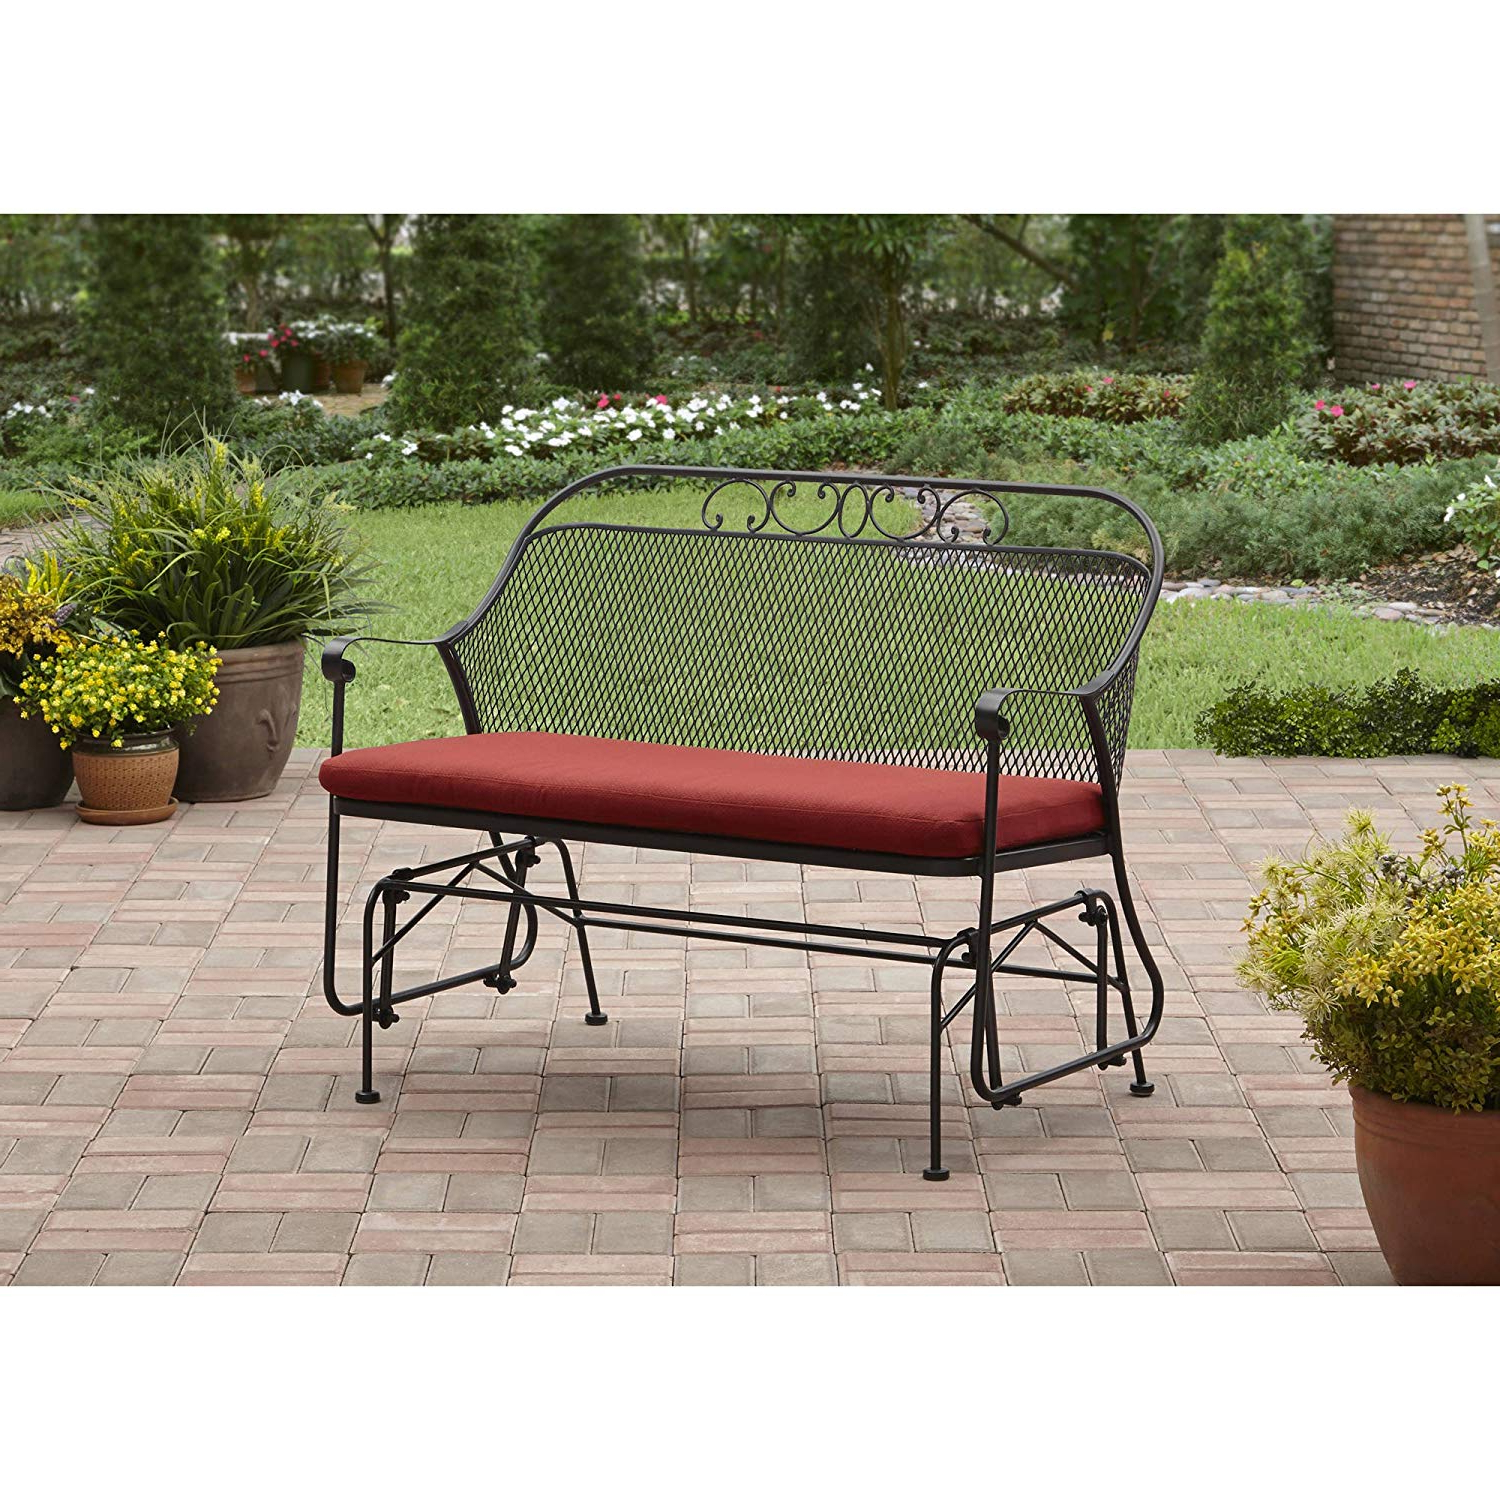 Outdoor Retro Metal Double Glider Benches Throughout Trendy Cheap Glider Red, Find Glider Red Deals On Line At Alibaba (View 23 of 30)